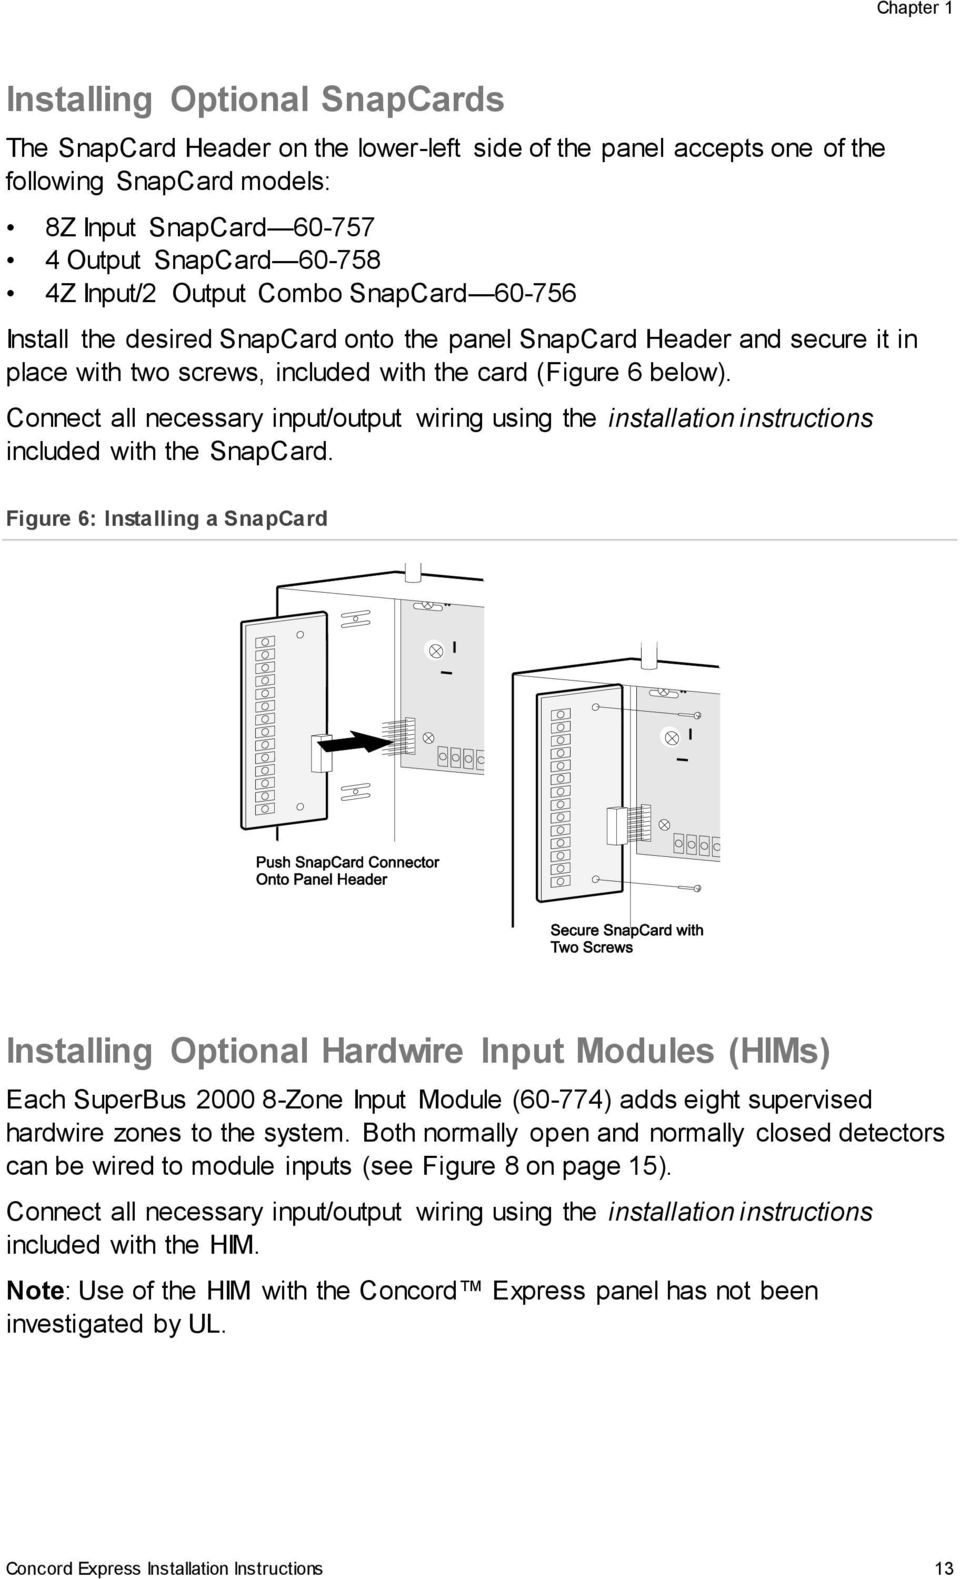 hight resolution of connect all necessary input output wiring using the installation instructions included with the snapcard